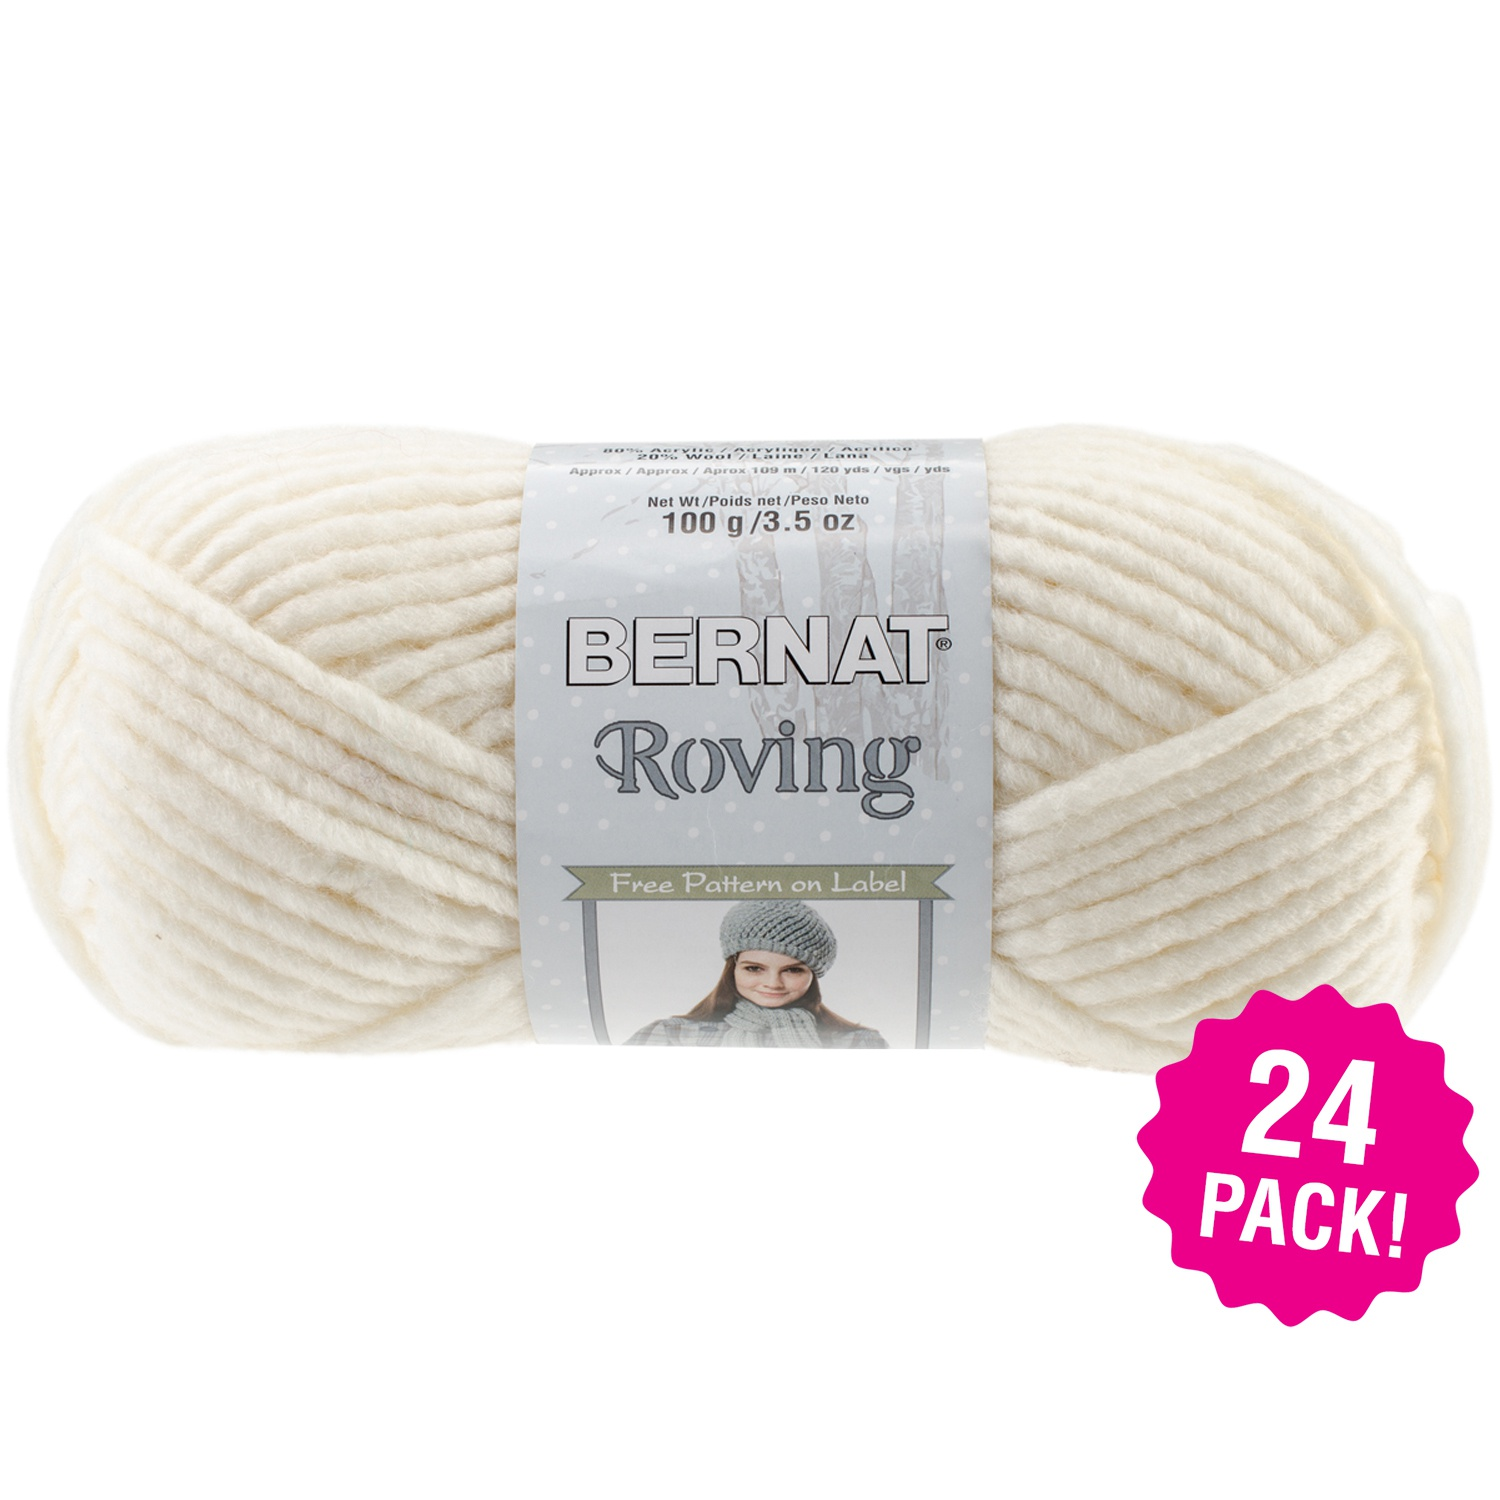 Bernat Roving Yarn - Rice Paper, Multipack of 24